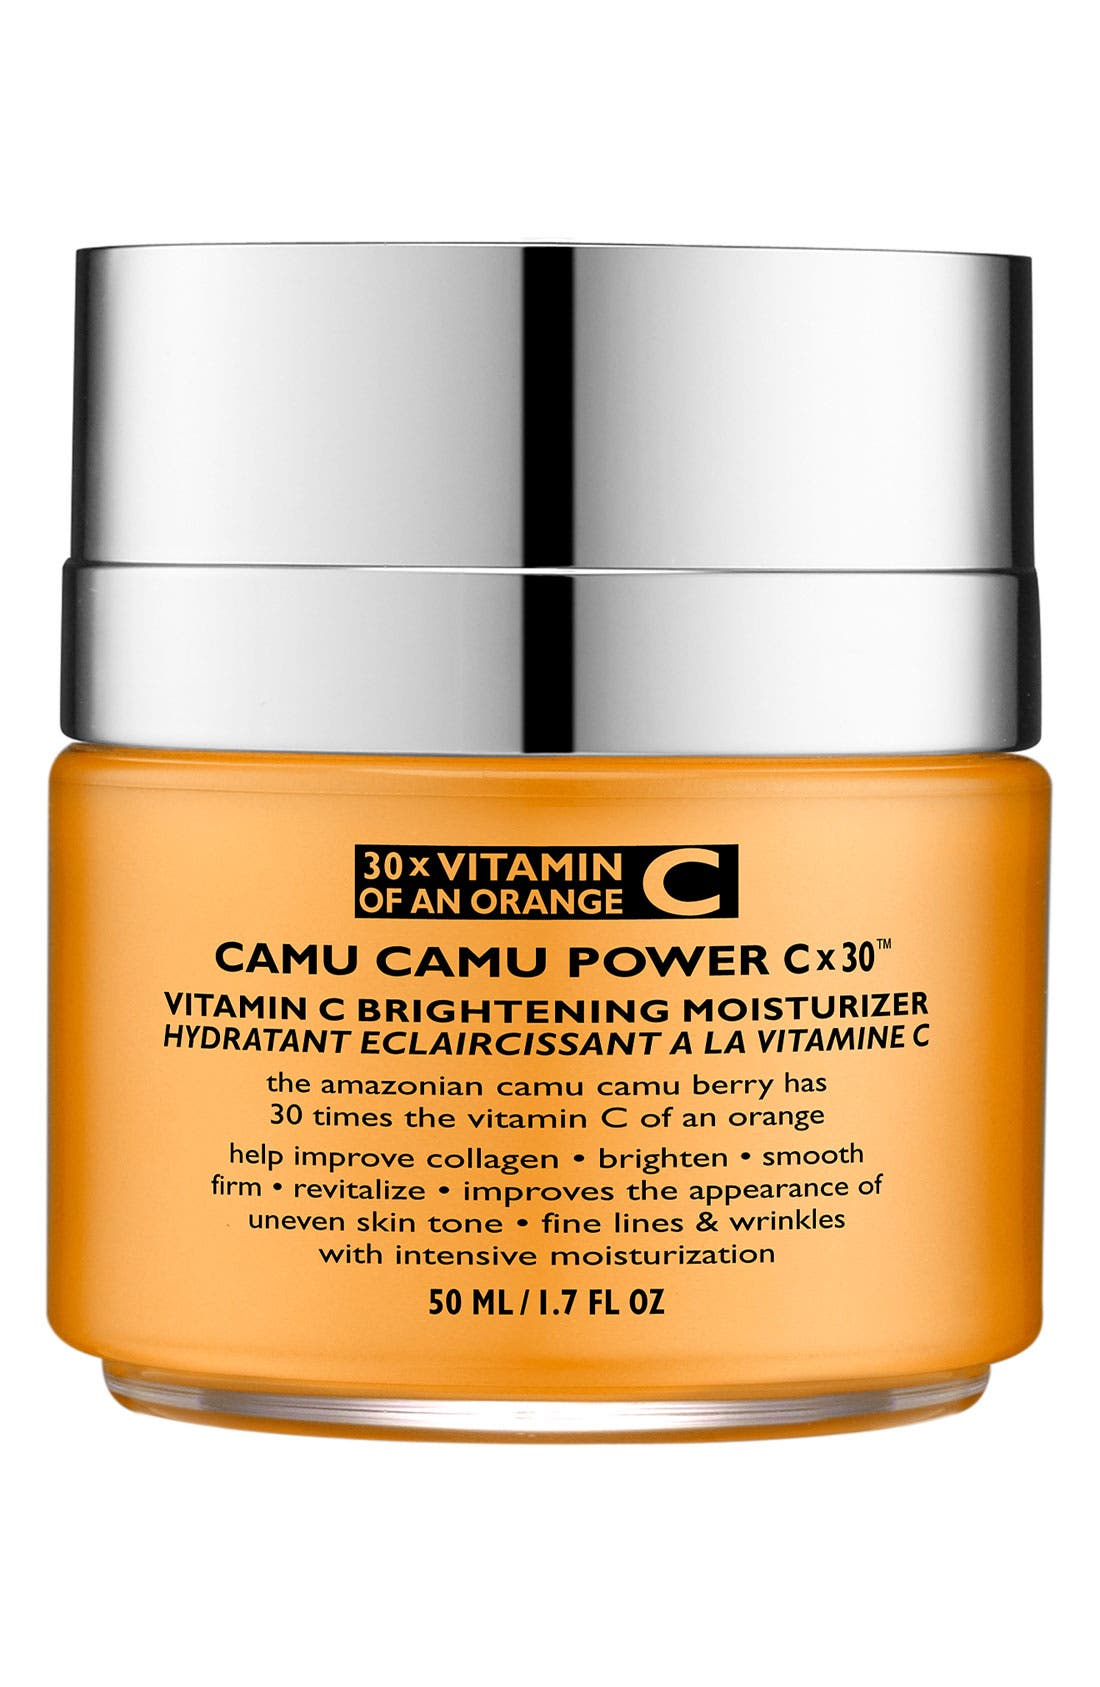 Peter Thomas Roth Camu Camu Power Cx30™ Vitamin C Brightening Moisturizer